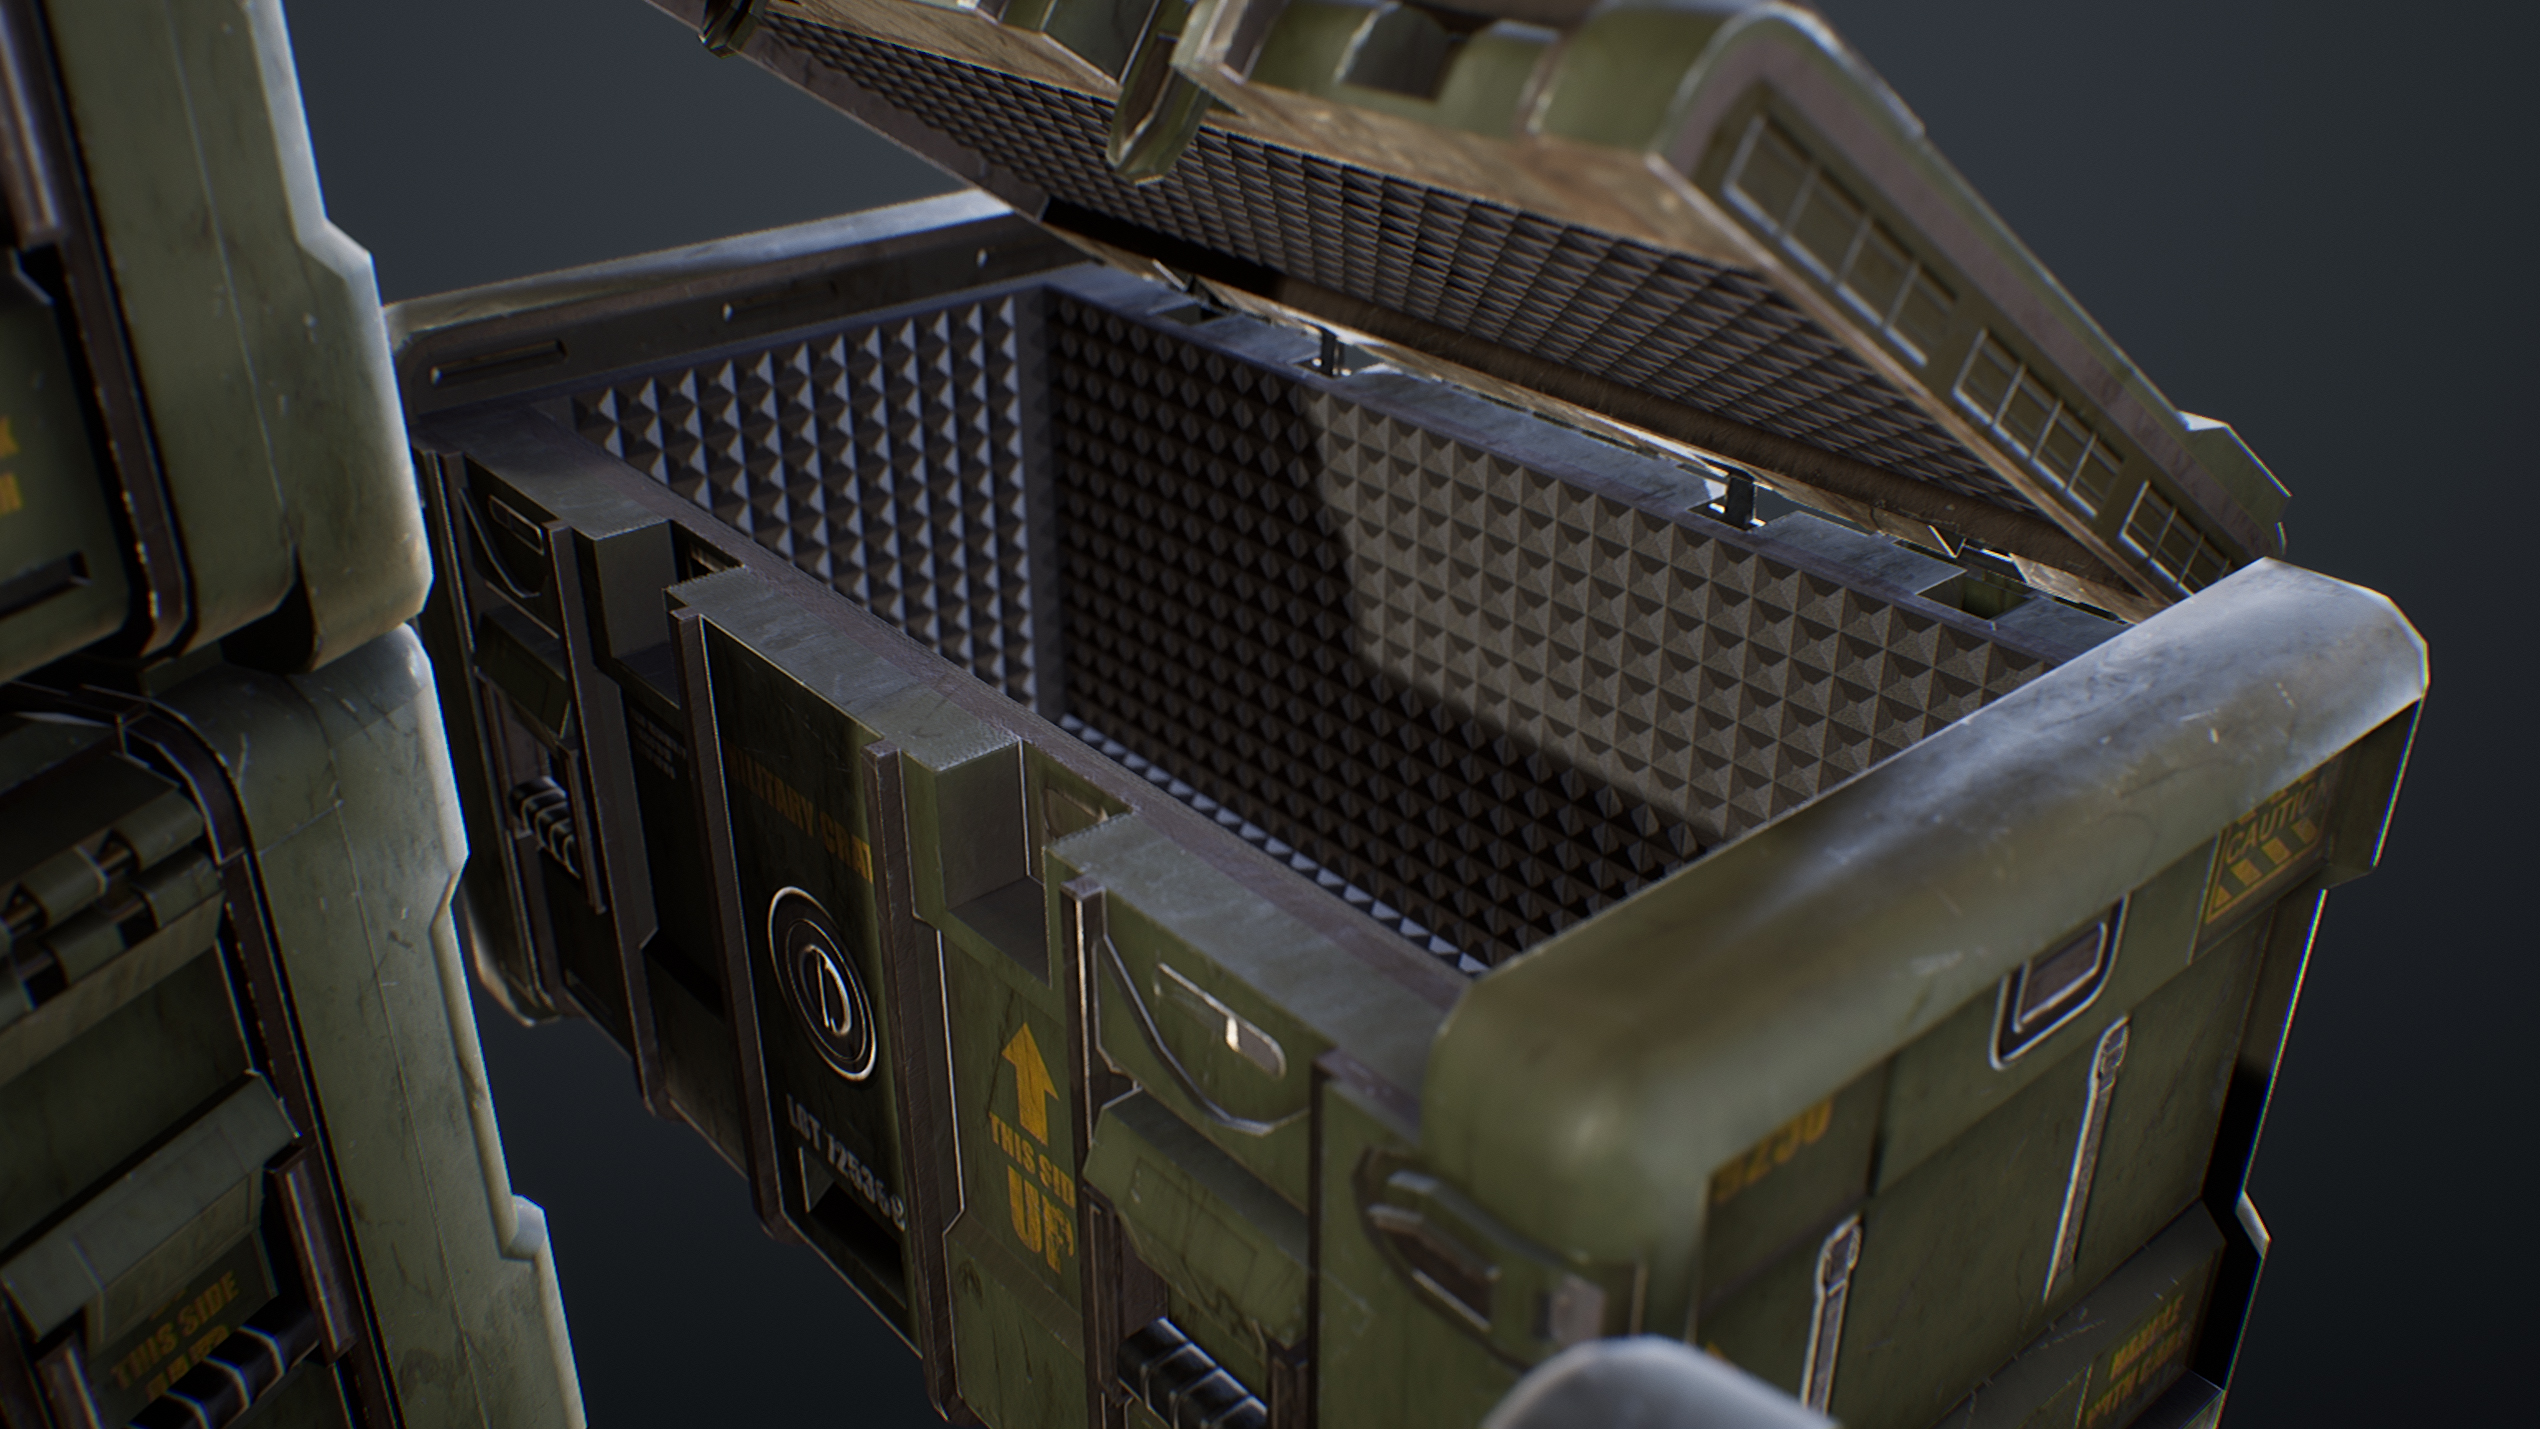 UE4 screenshot close up detailed shot of the open crates